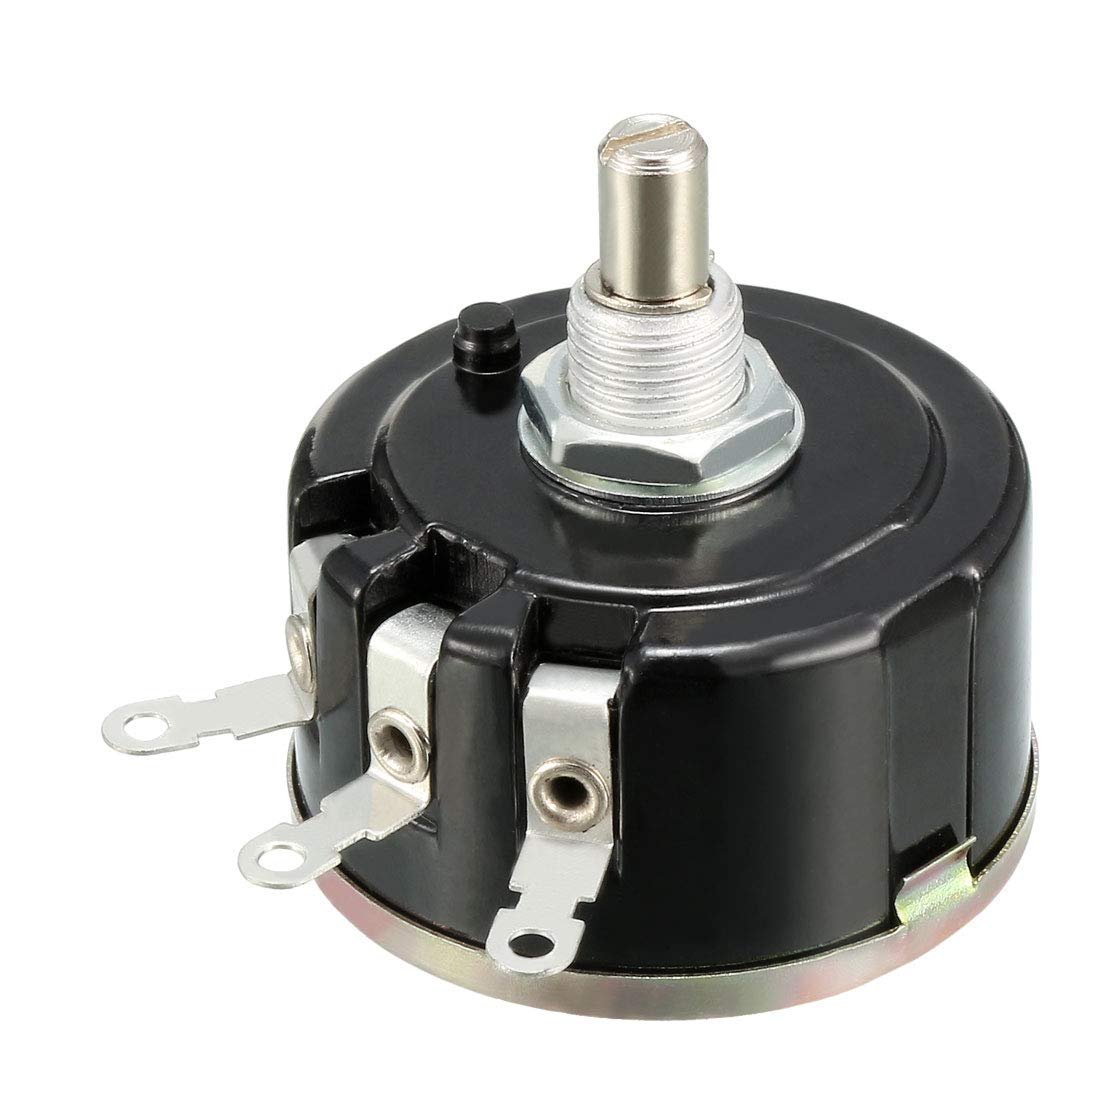 uxcell 4K7 Ohm Variable Resistors Single Turn Rotary Carbon Film Potentiometer W Knobs